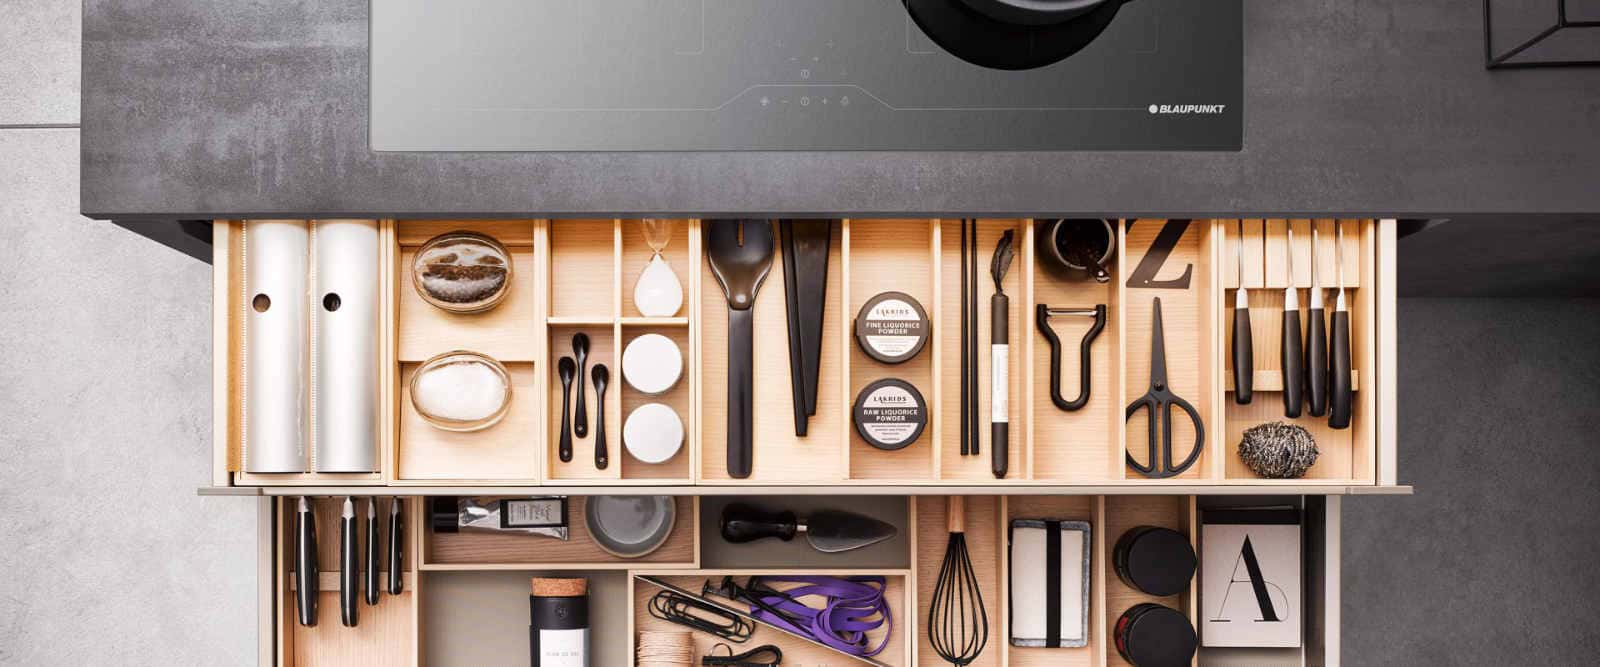 open cutlery kitchen drawer